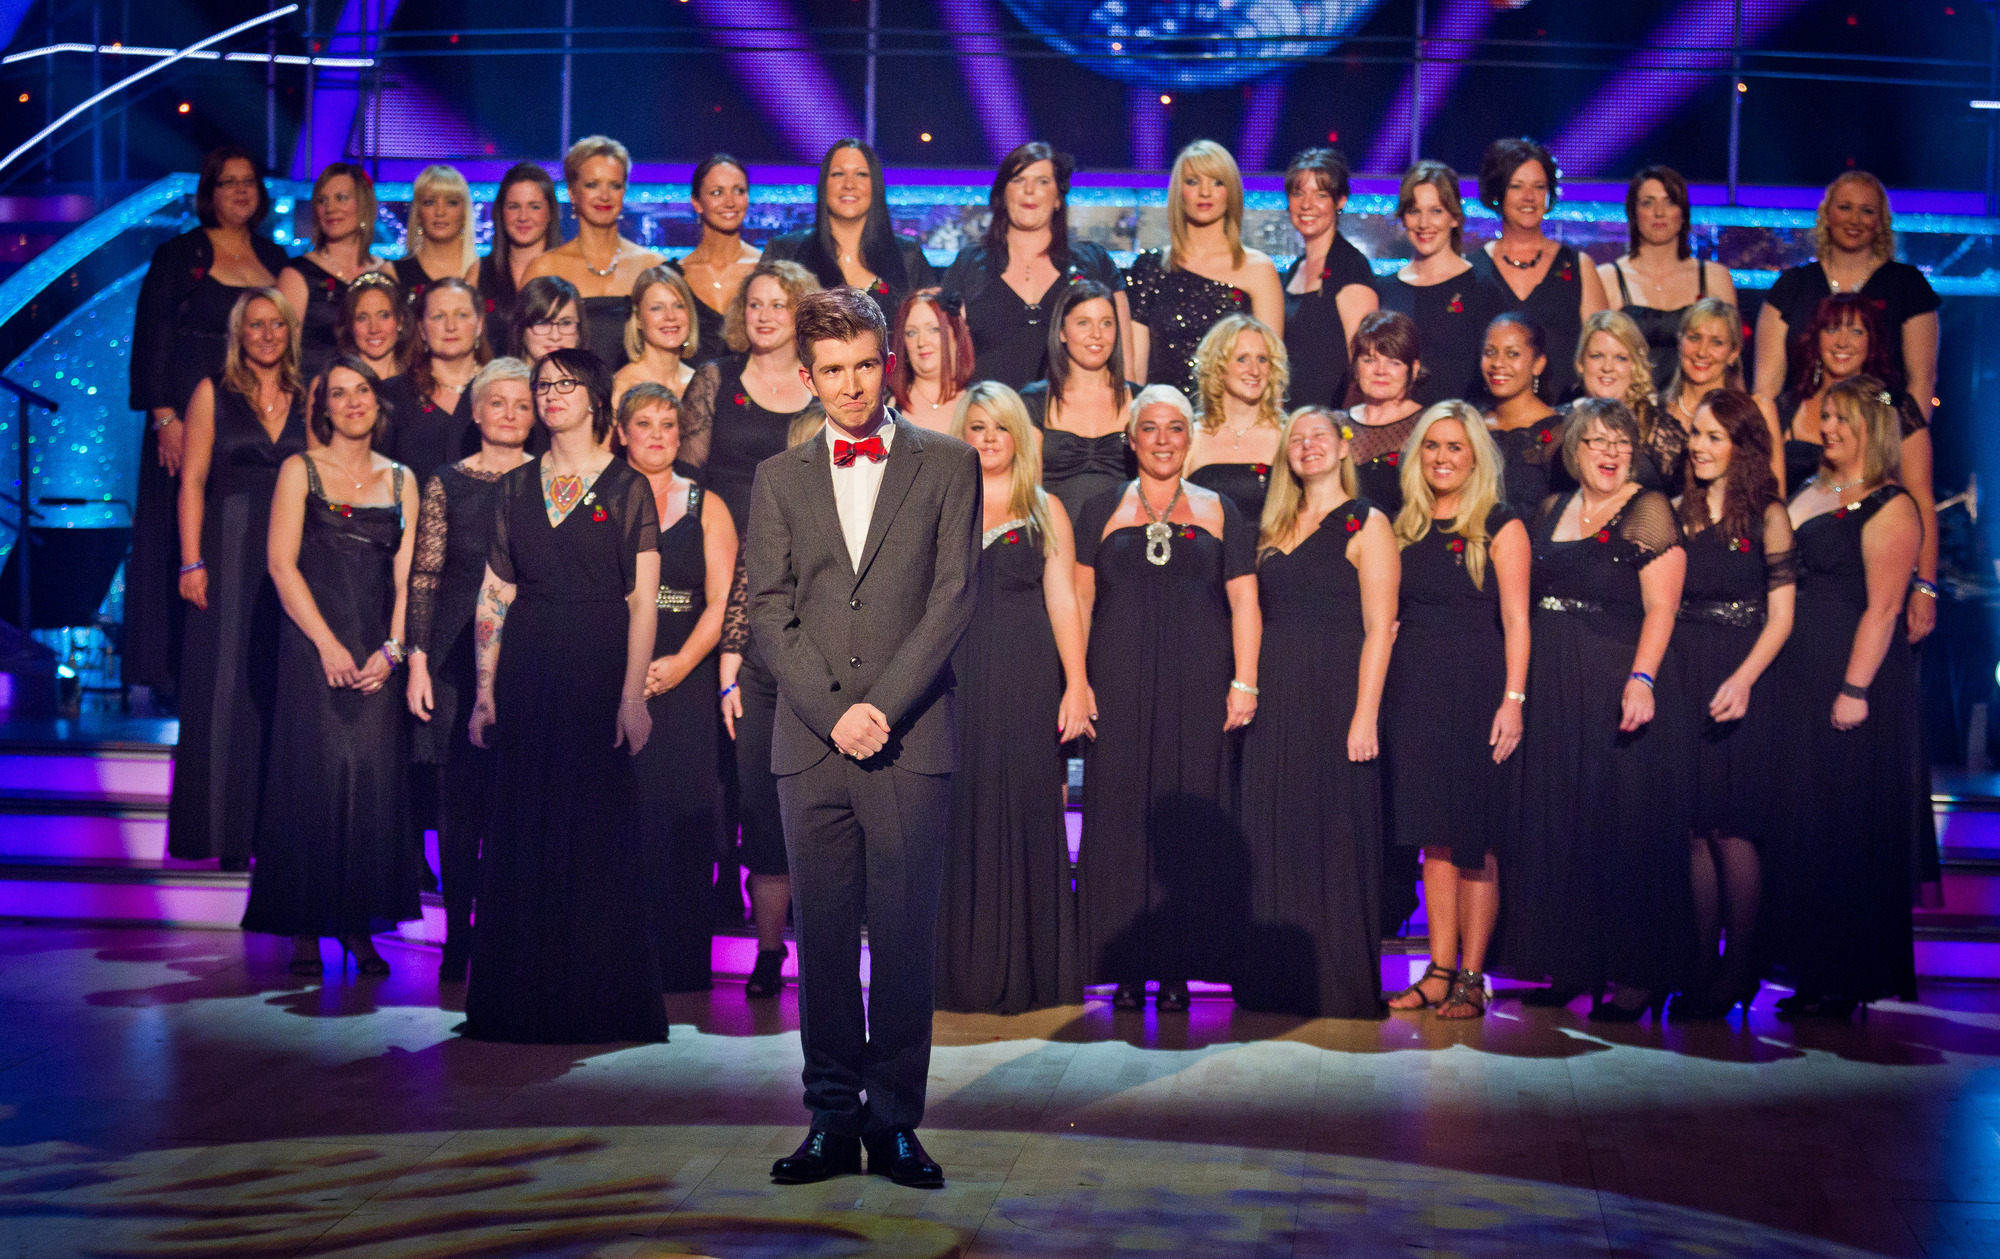 The Military Wives sing 'Wherever You Are'. Military Wives, Gareth Malone